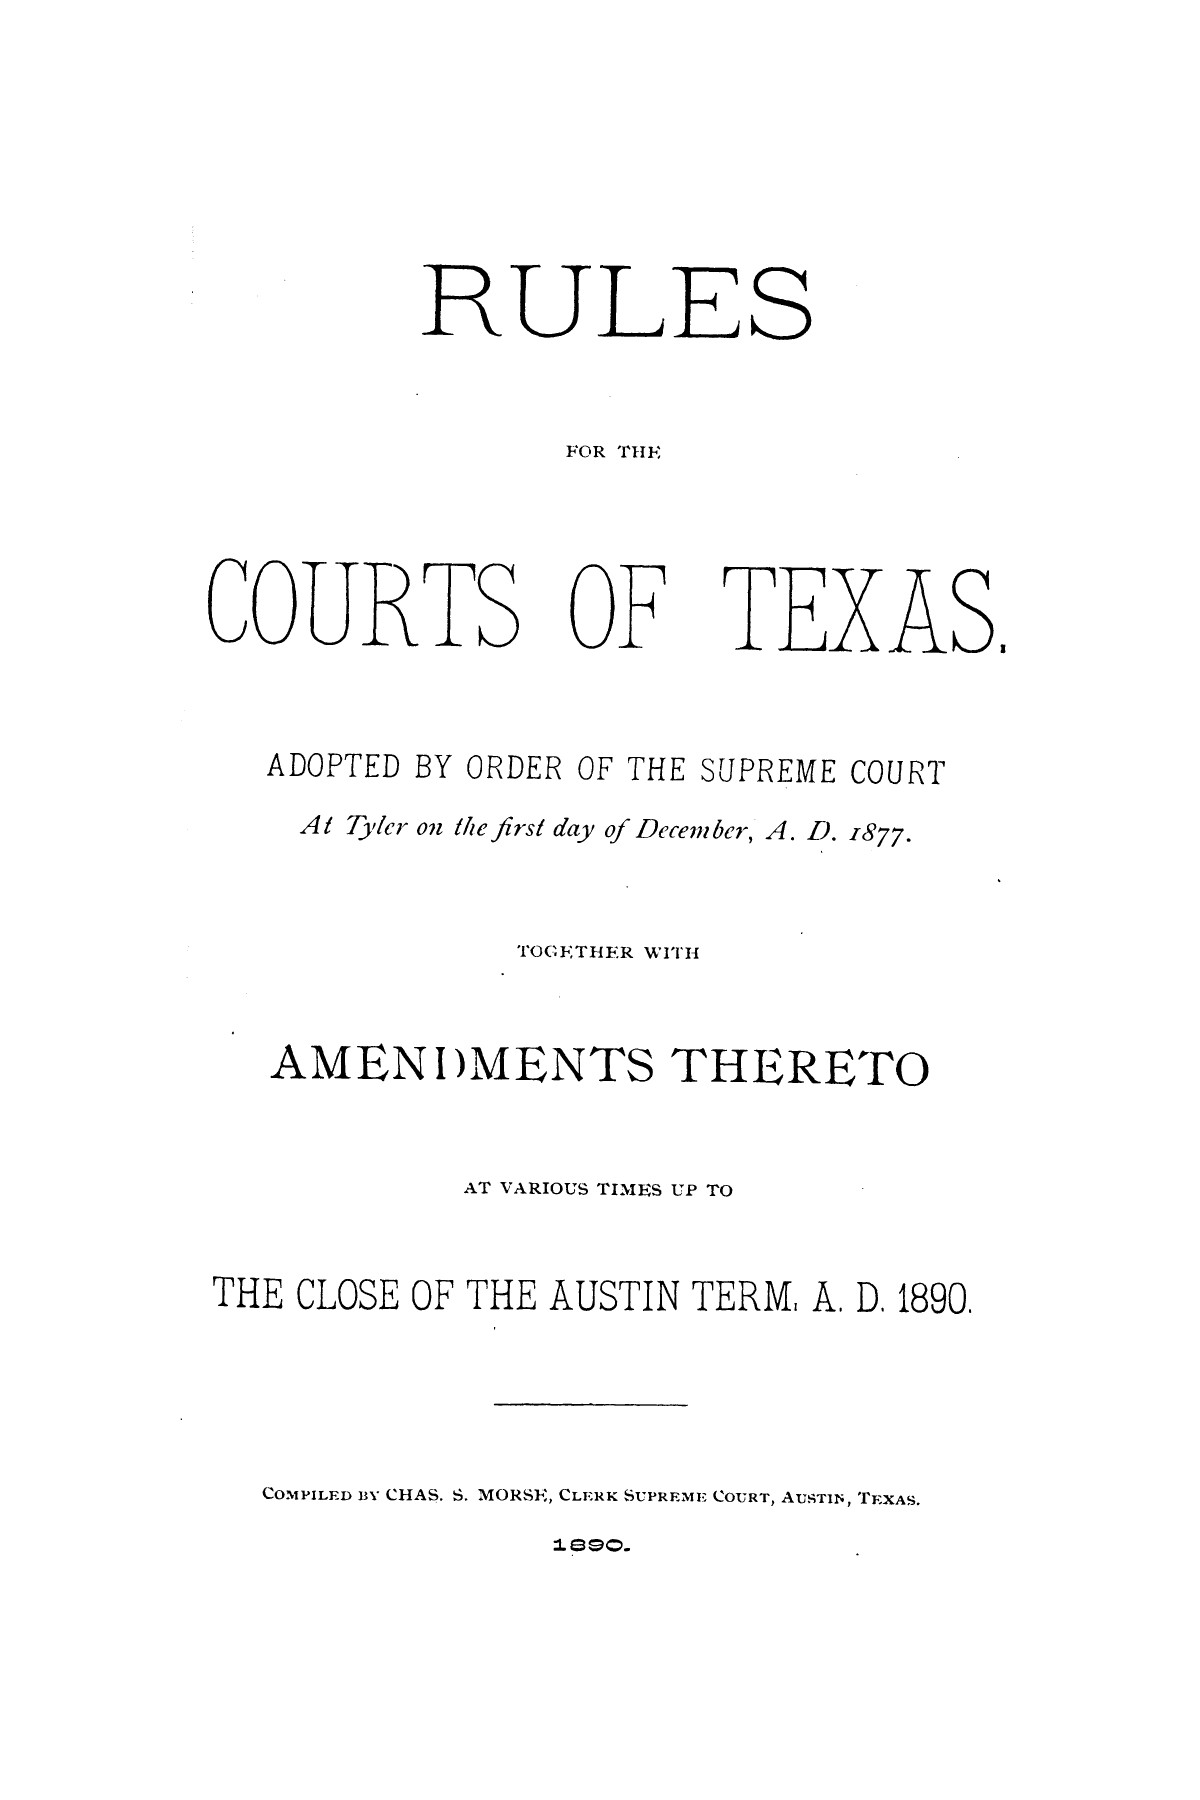 Rules for the courts of Texas: adopted by order of the Supreme Court at Tyler on the first day of December, A.D. 1877: together with amendments thereto at various times up to the close of the Austin term, A.D. 1890                                                                                                      [Sequence #]: 1 of 64